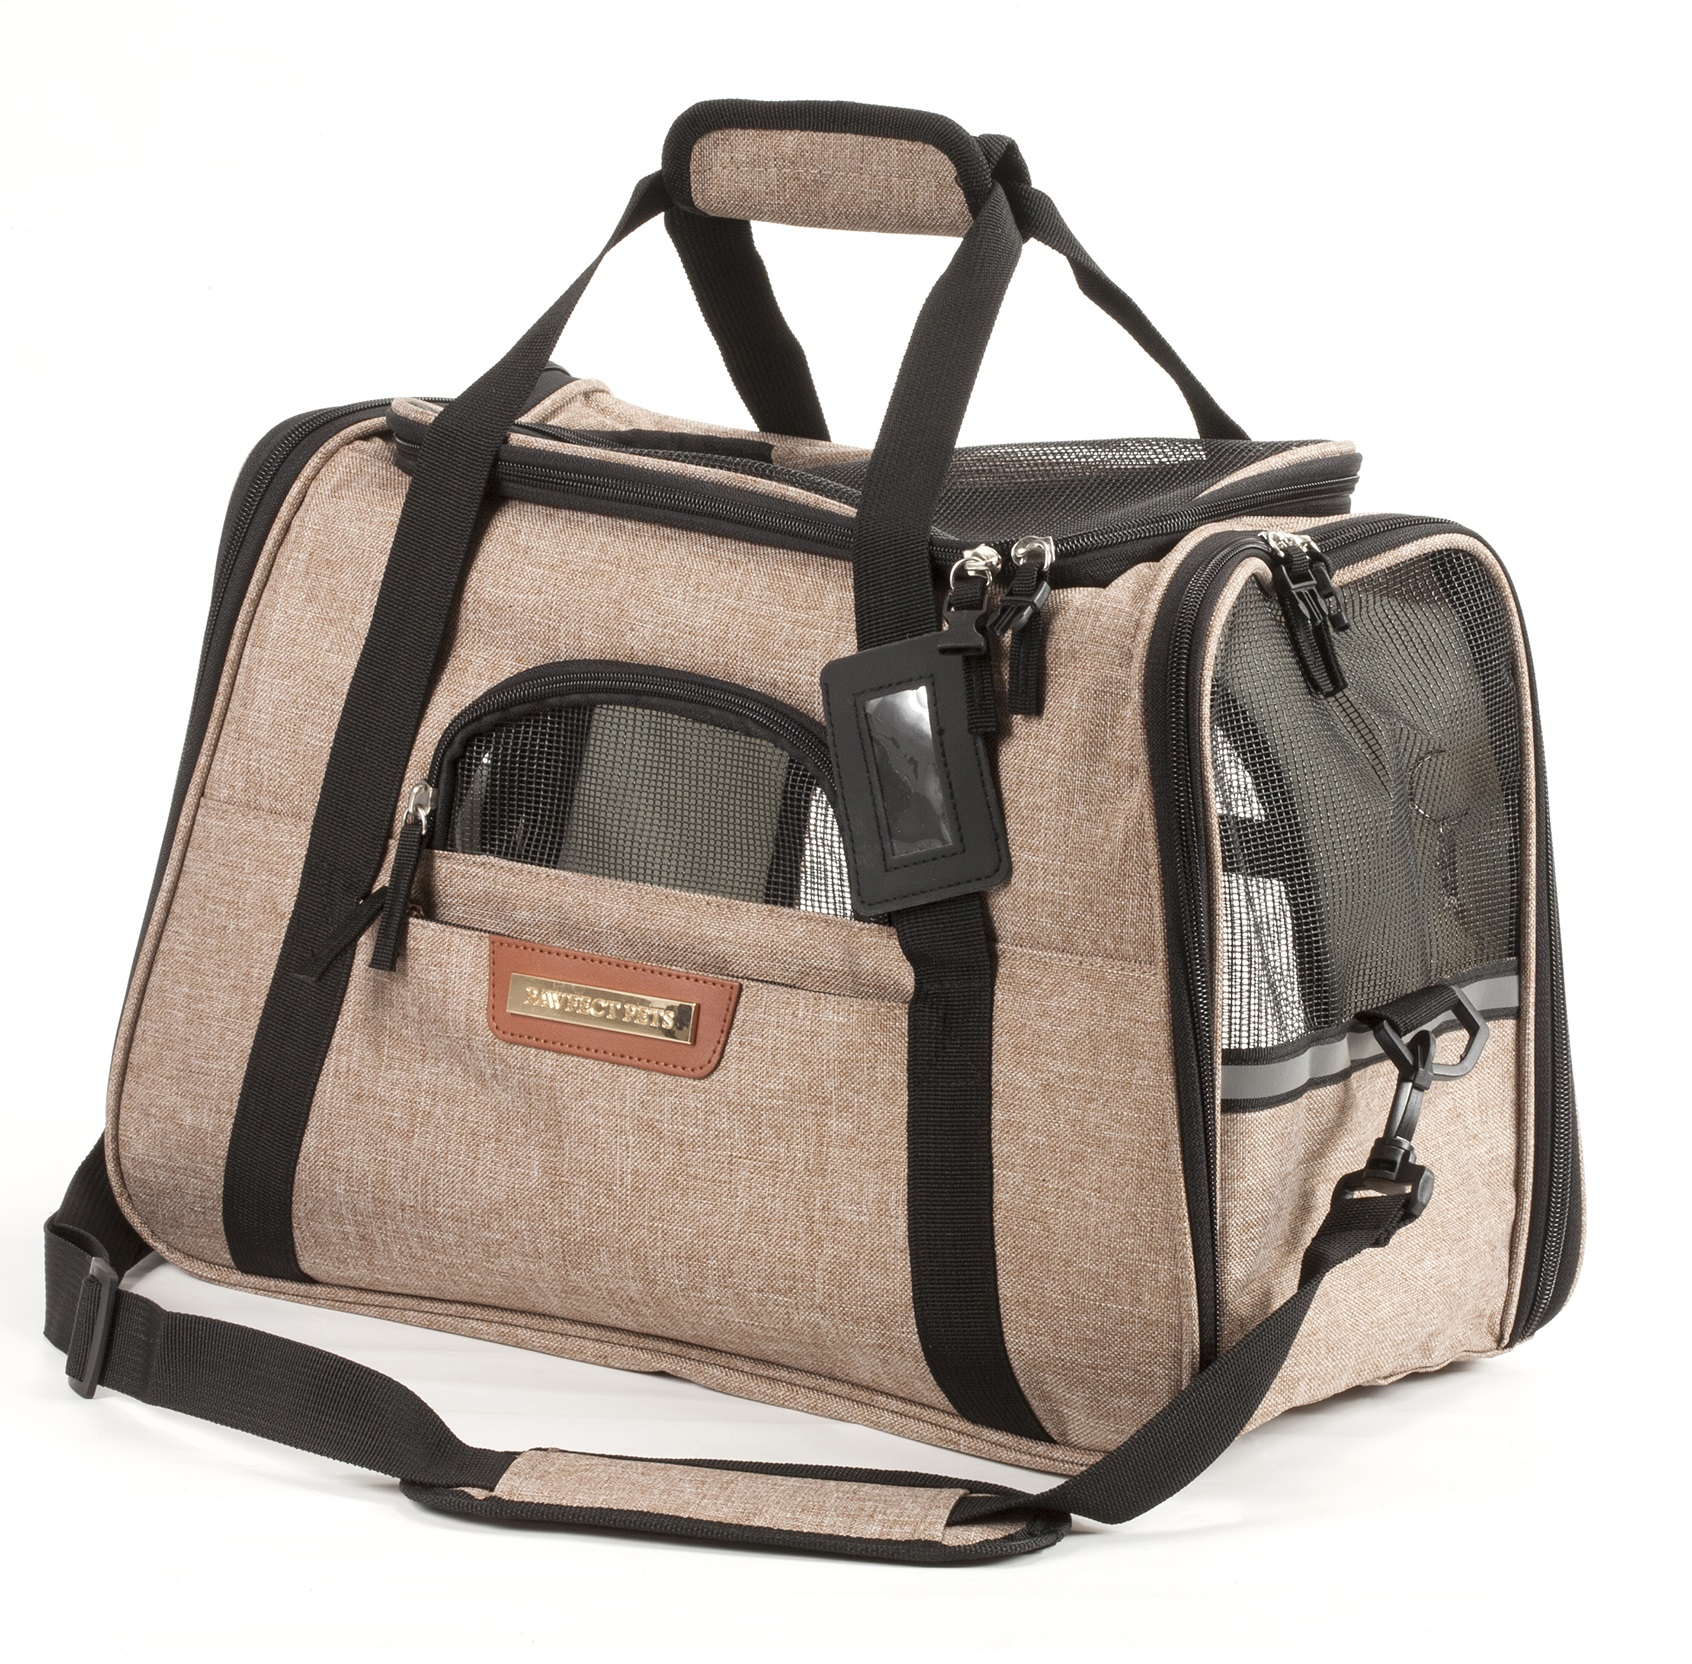 Premium Pet Travel Carrier for Small Dogs and Cats (Charcoal Grey)